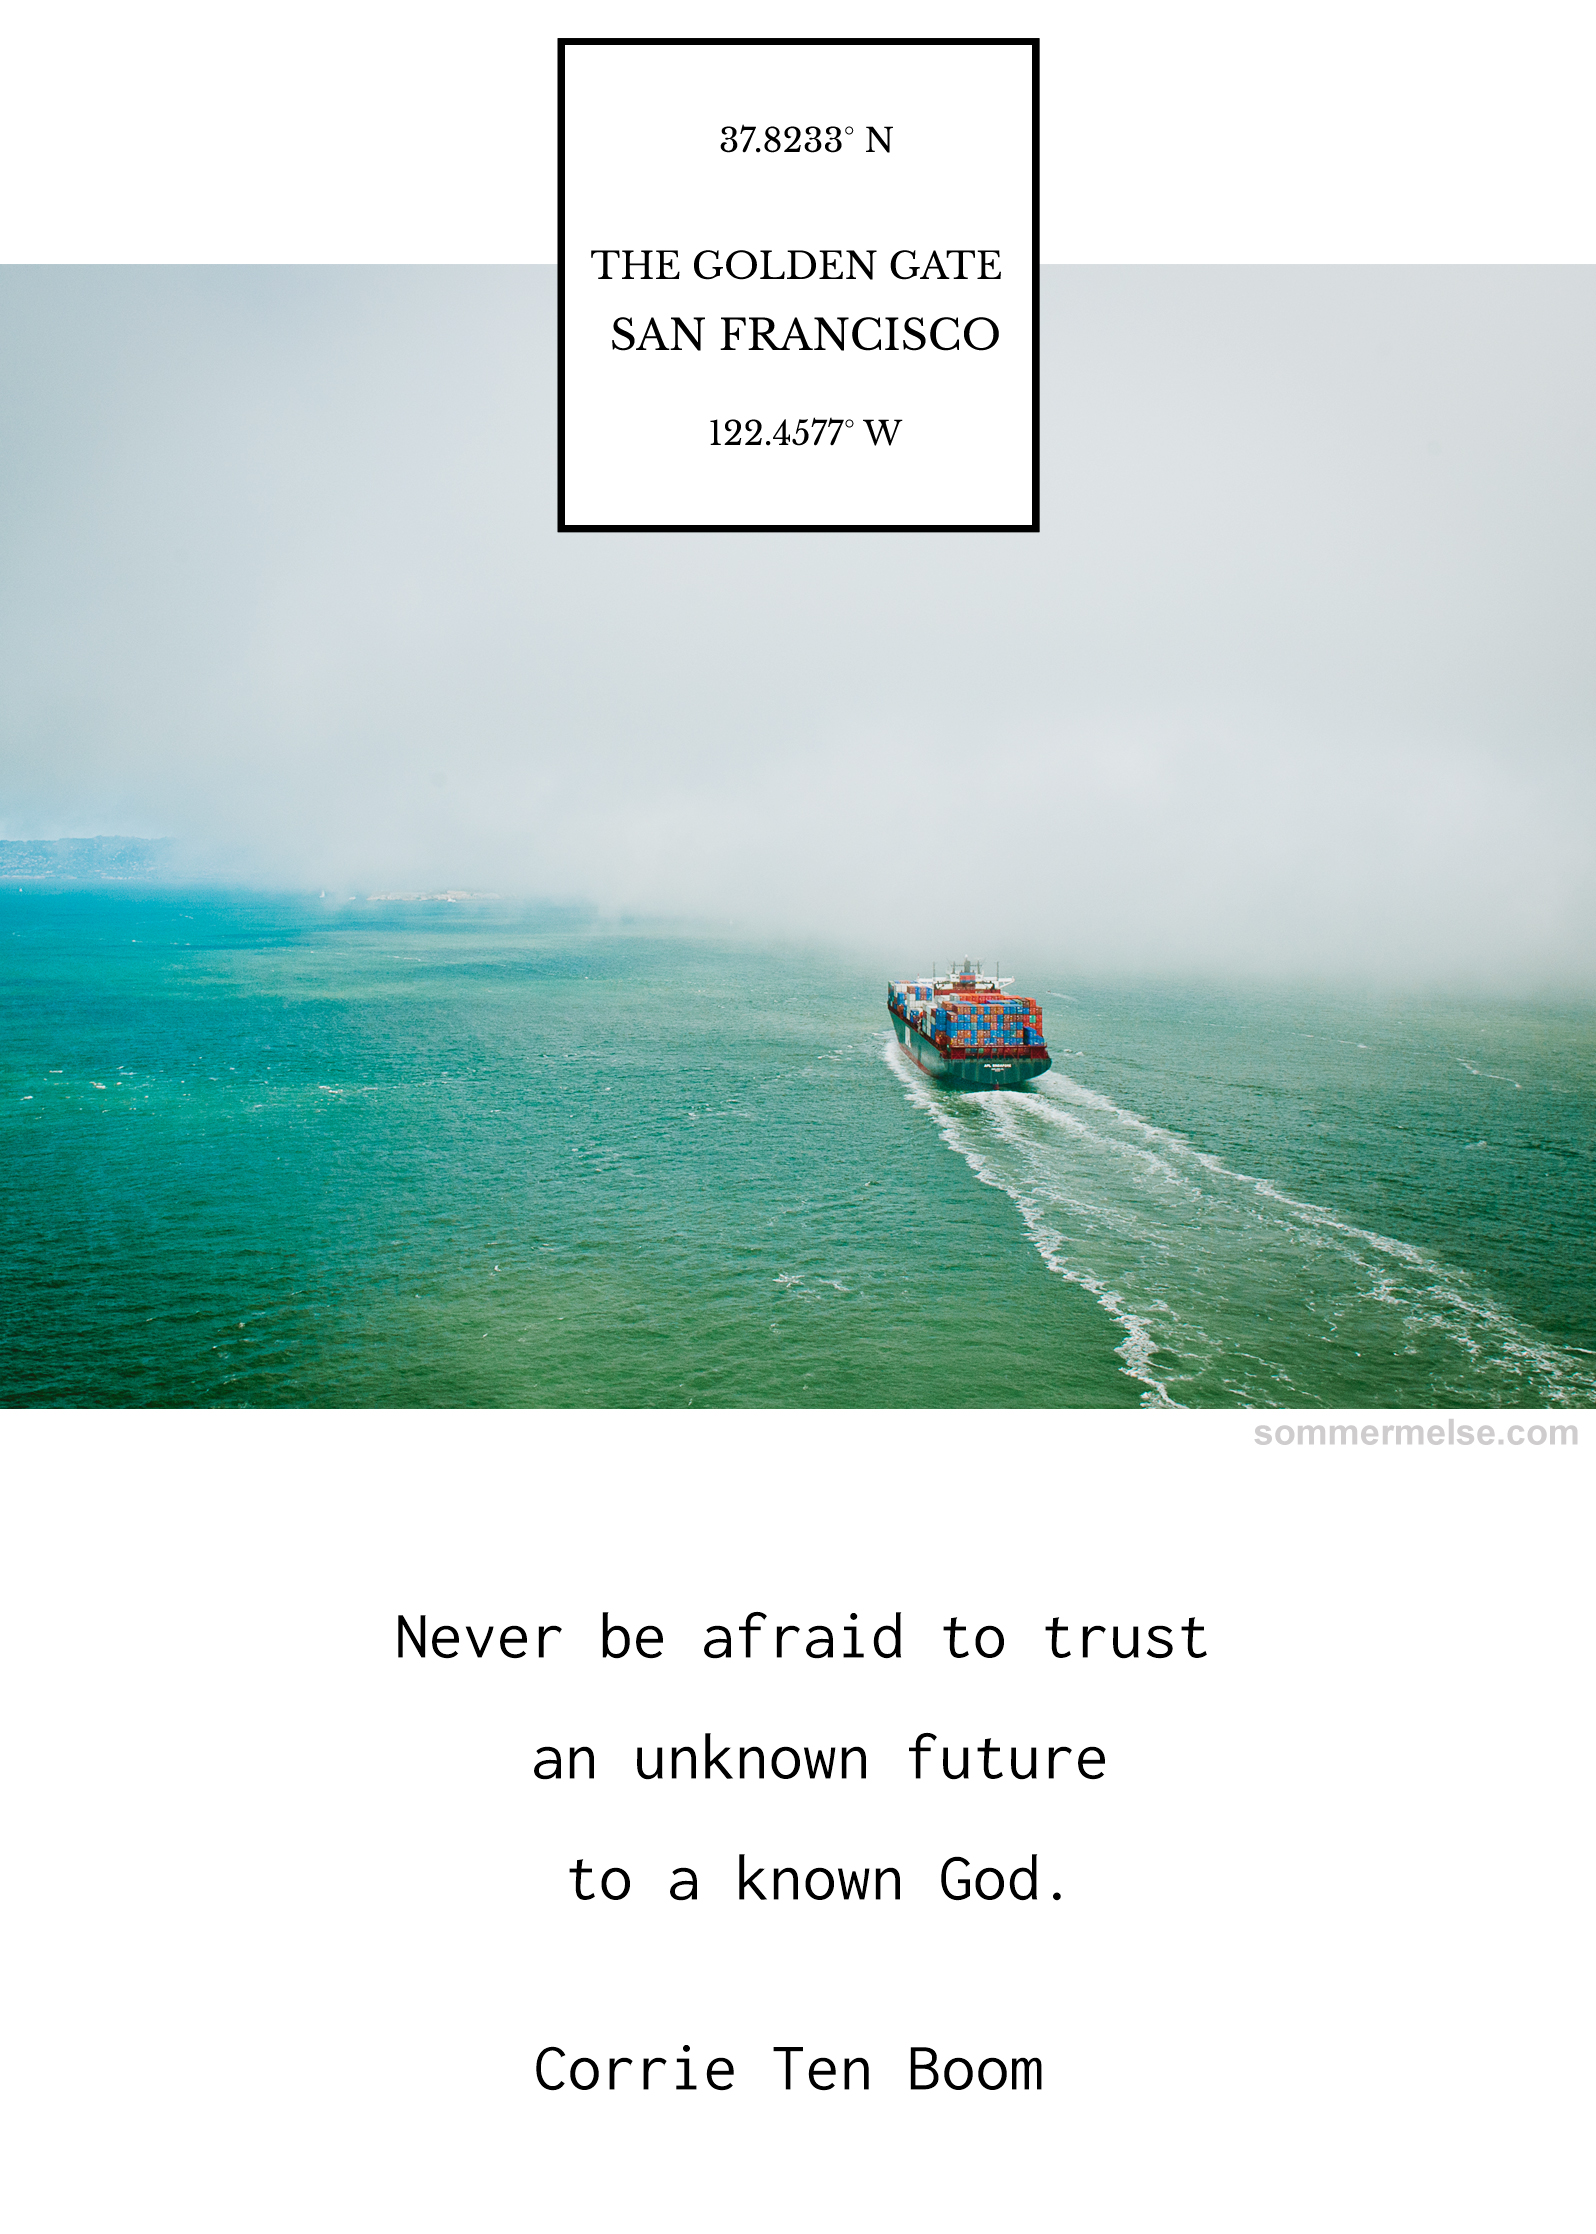 66_finding_wonder_never_be_afraid_to_trust_corrie_ten_boom_quote